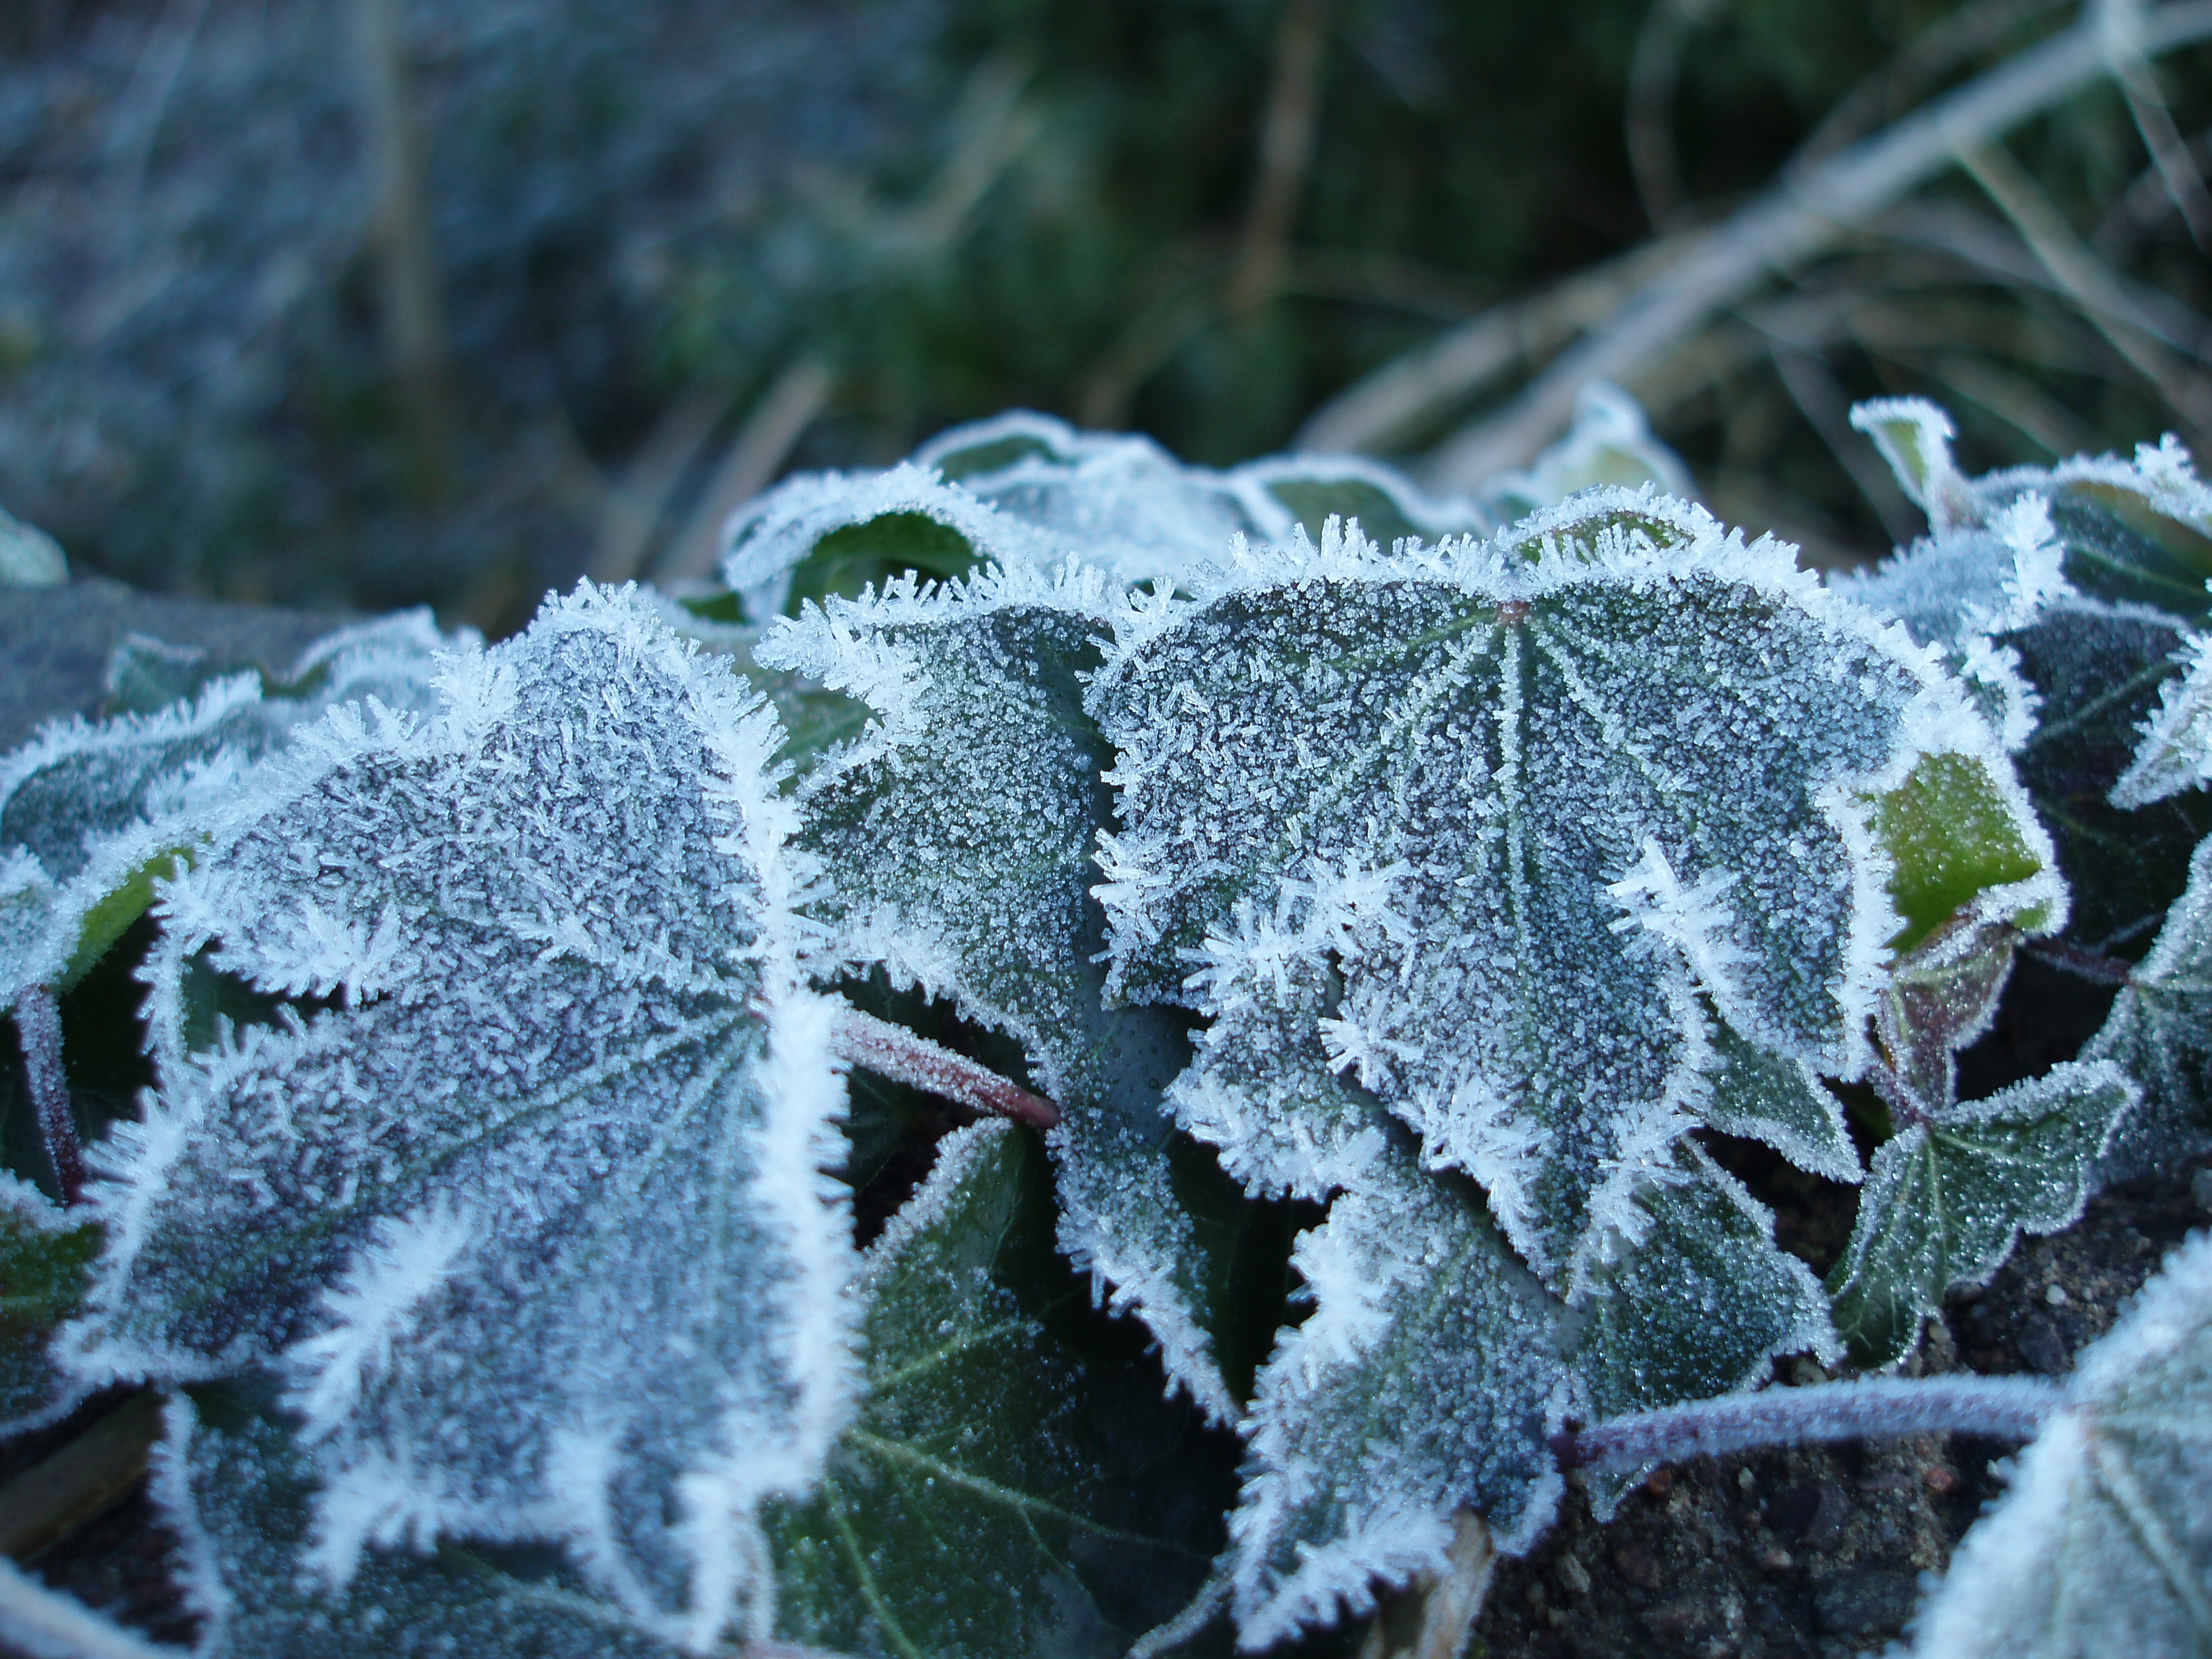 ivy covered in winter frost